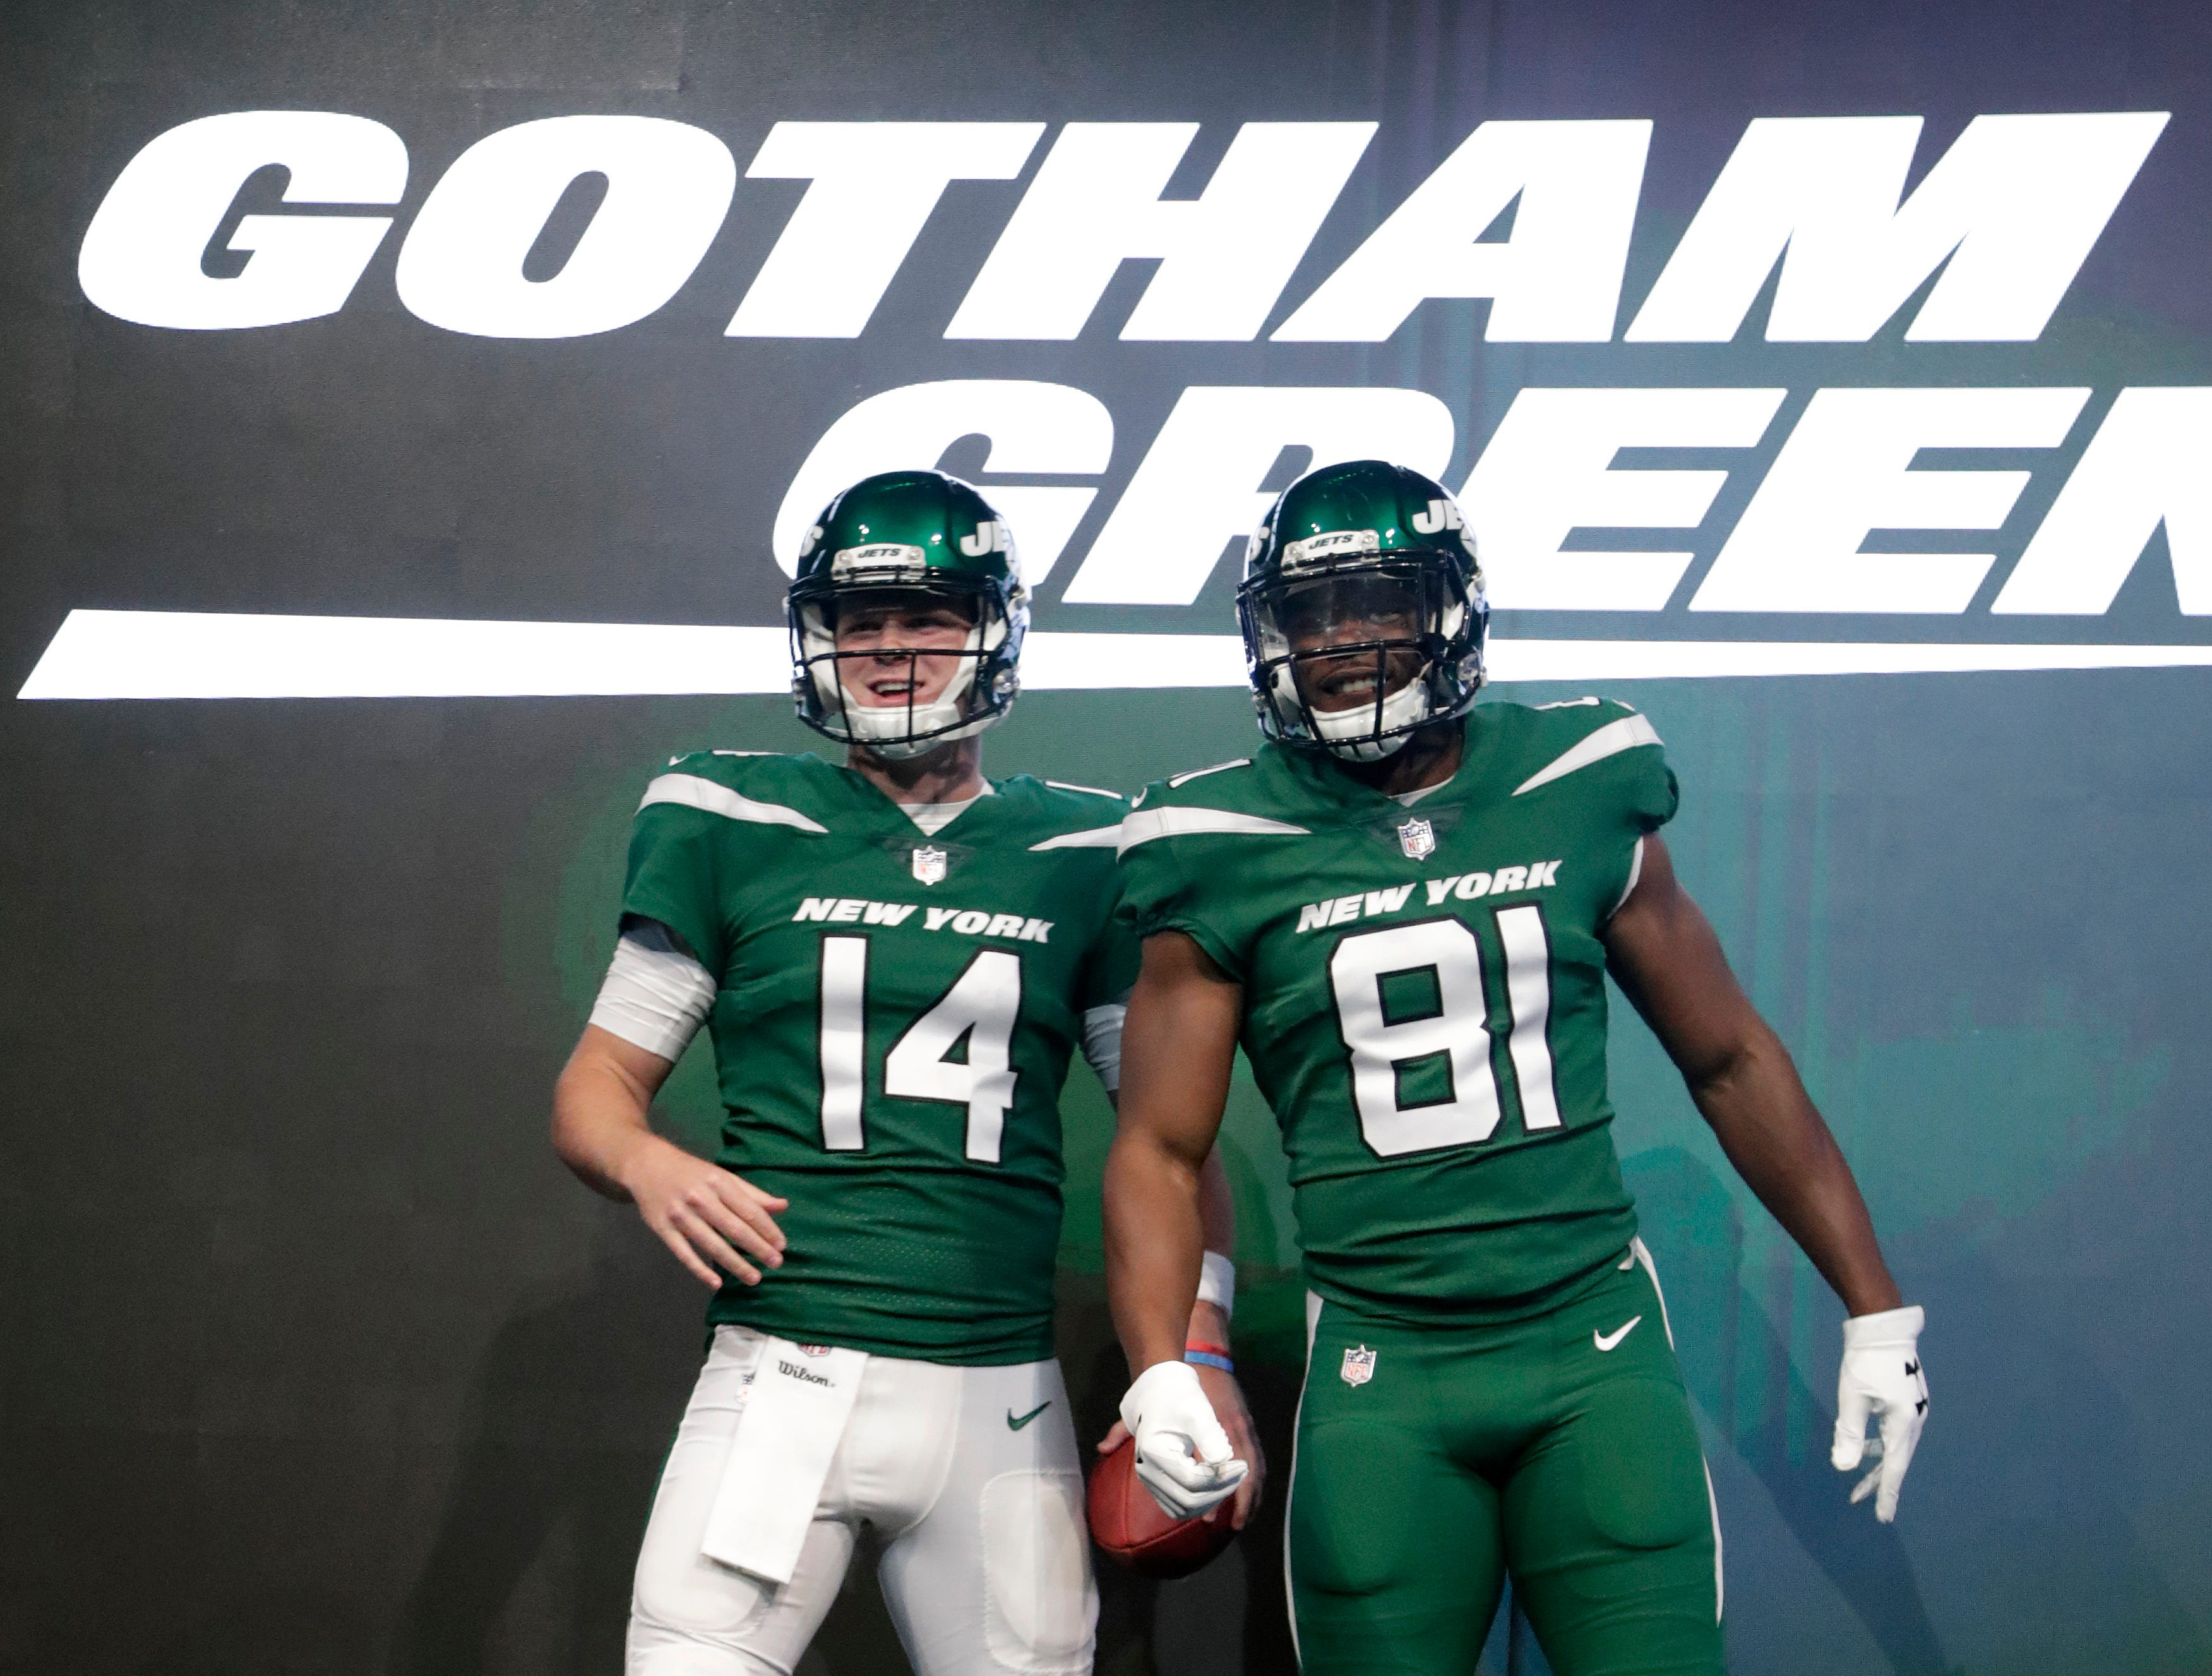 """New York Jets quarterback Sam Darnold (14) and wide receiver Quincy Enunwa (81) model the NFL football team's new """"Gotham green"""" uniforms Thursday, April 4, 2019, in New York. (AP Photo/Julio Cortez)"""